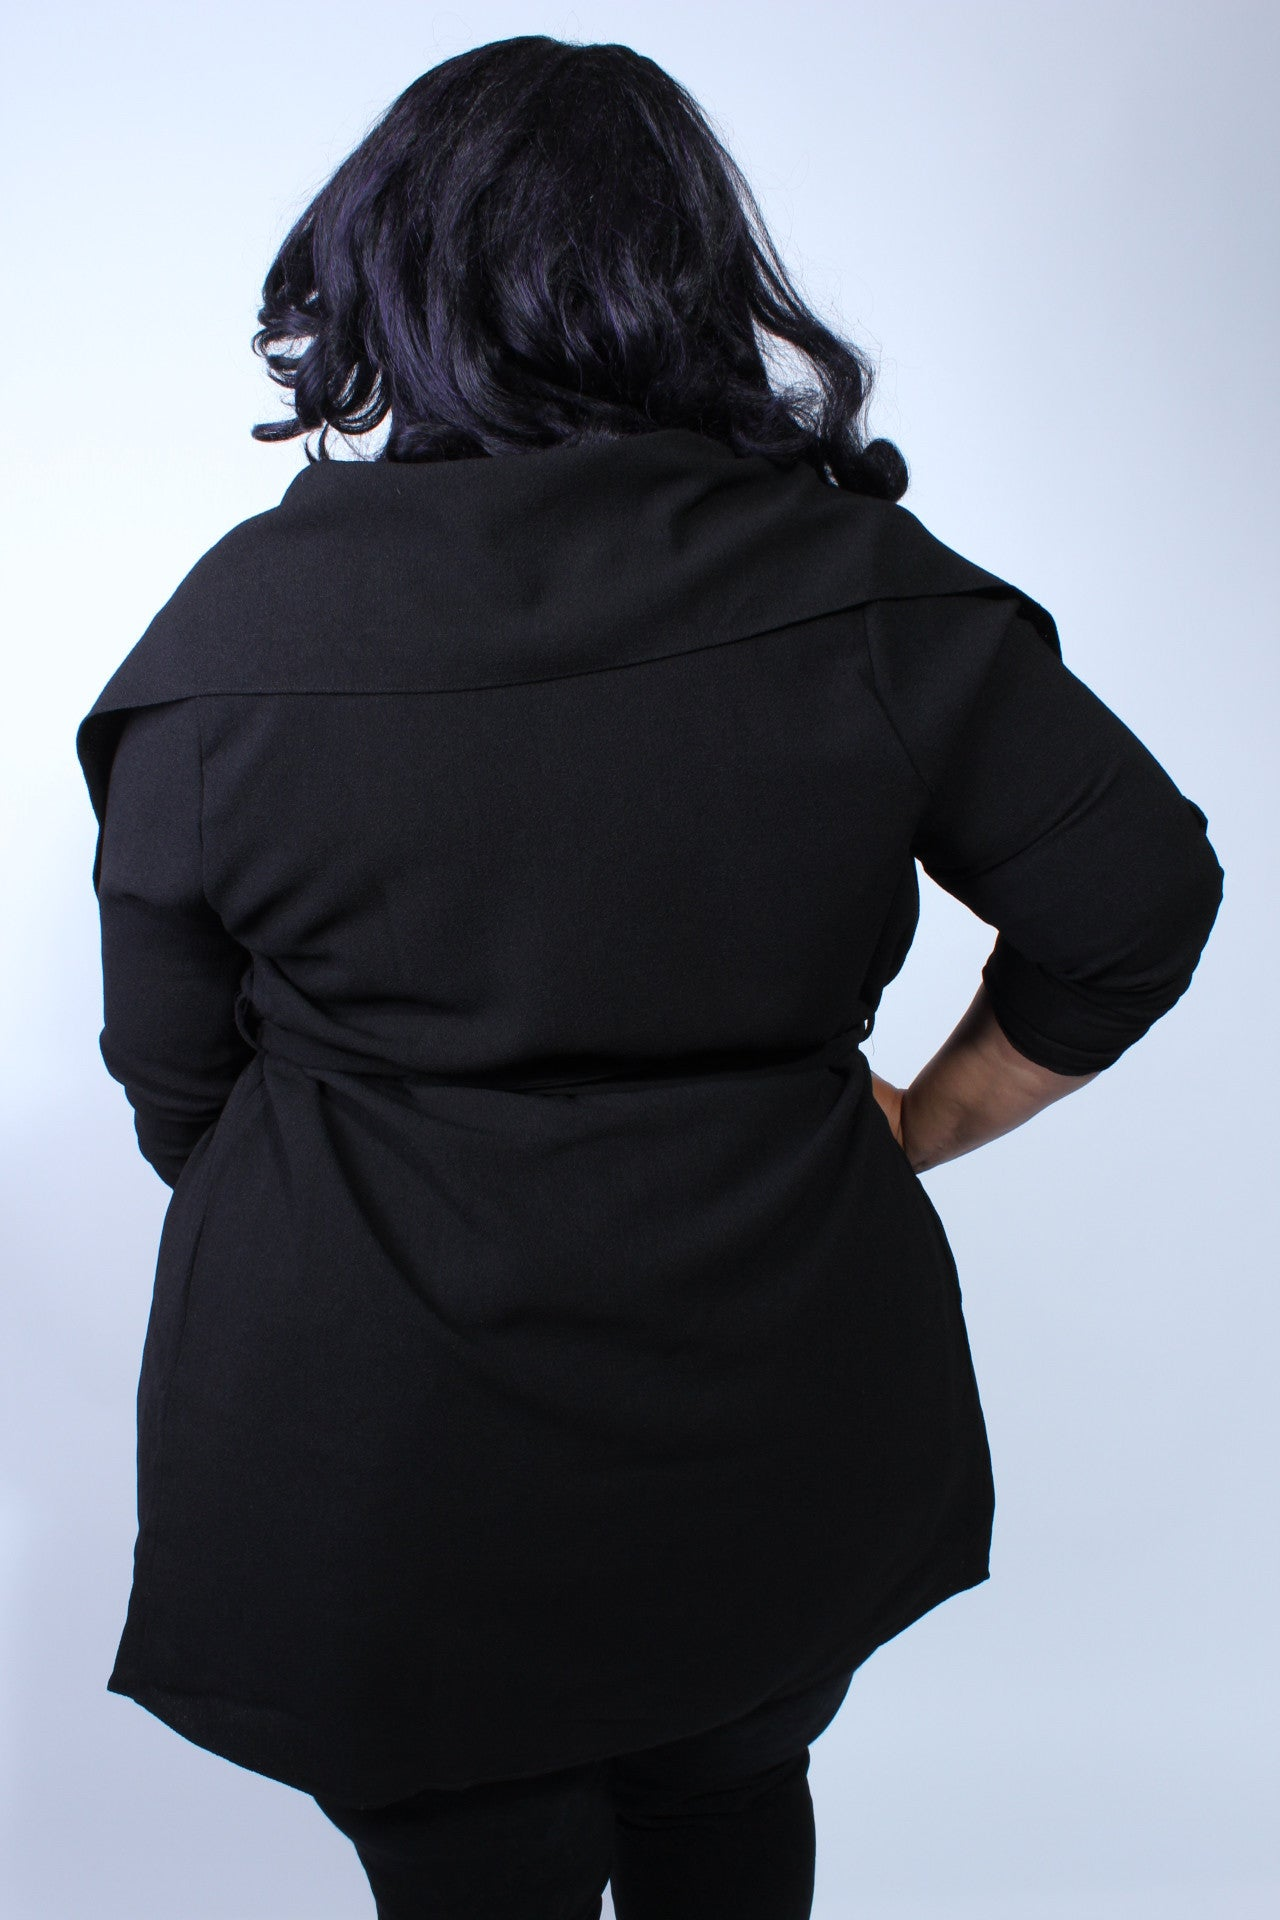 Plus Size Clothing for Women - Corinne Cardigan - Black - Society+ - Society Plus - Buy Online Now! - 4